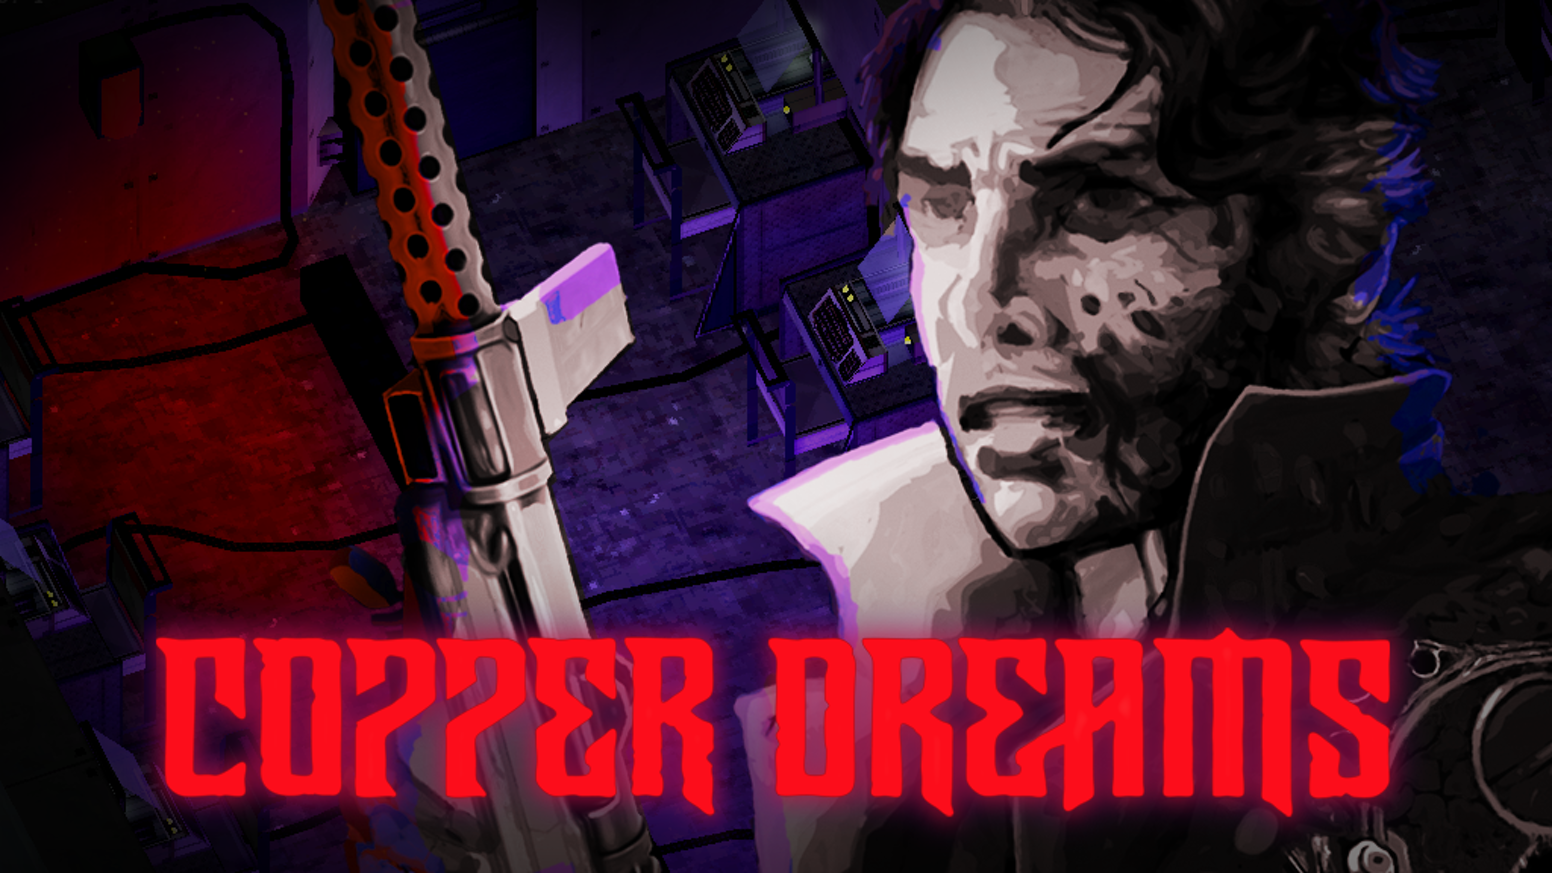 A CRPG featuring cyber-espionage and horror. Turn based combat with timed actions, stealth and chainsaw arms.